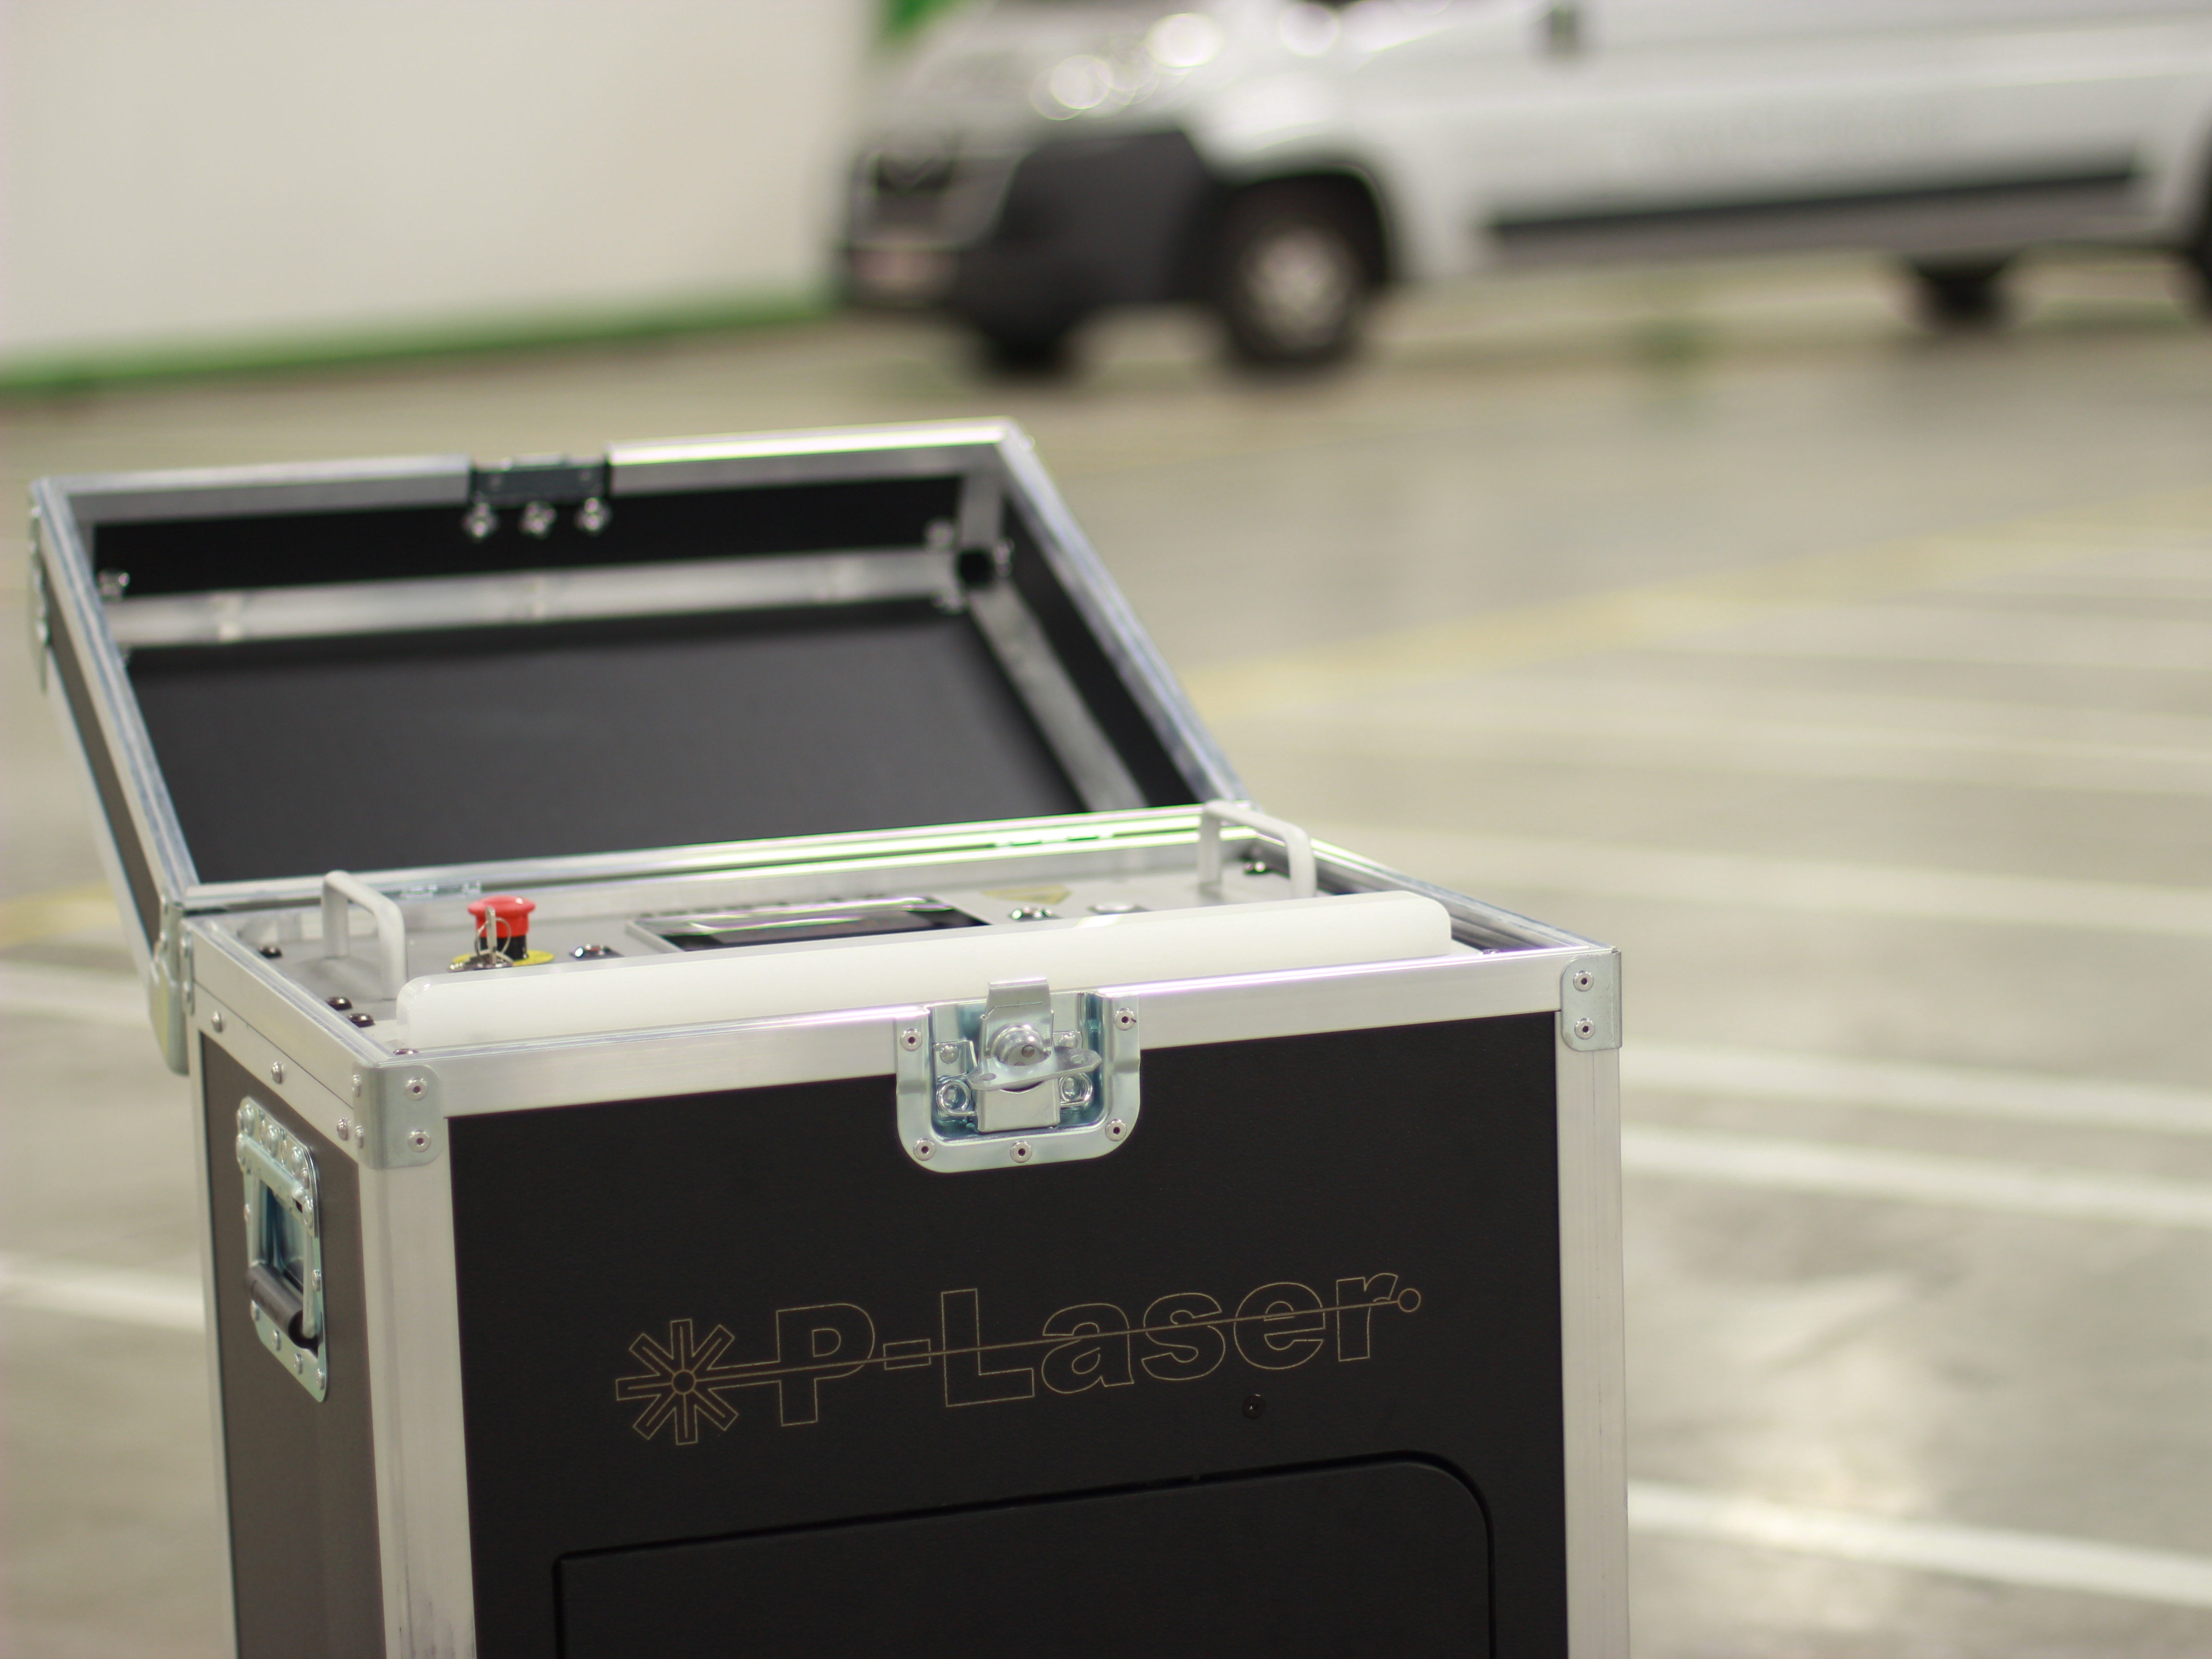 P-Laser Low Power laser cleaning unit in flight case